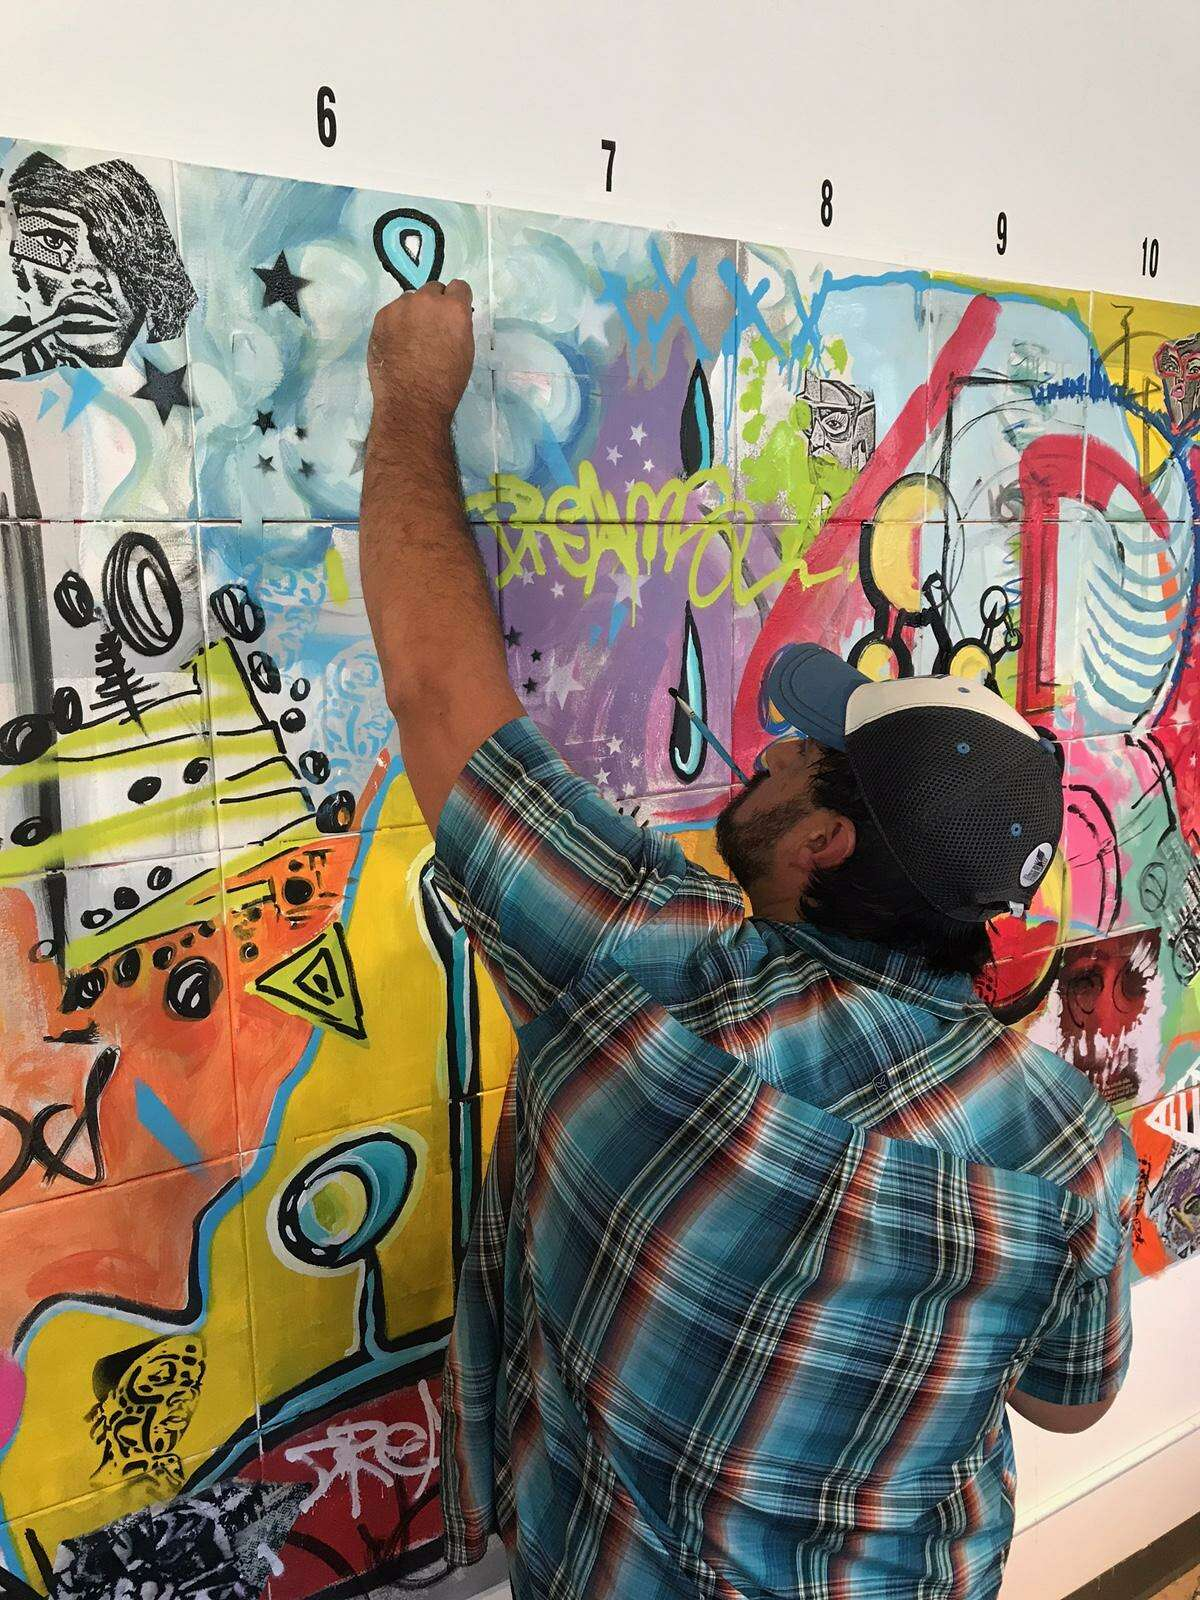 """Stamford's Danger Gallery sold out its latest show, """"1X1,"""" for which seven Connecticut artists -- Holly Danger, Marc DeRosa, Marcella Kovac, Ben Quesnel, Cris Dam, Liz Squillace and Jahmane Artz -- painted a mural in front of 200 guests on Aug. 5."""